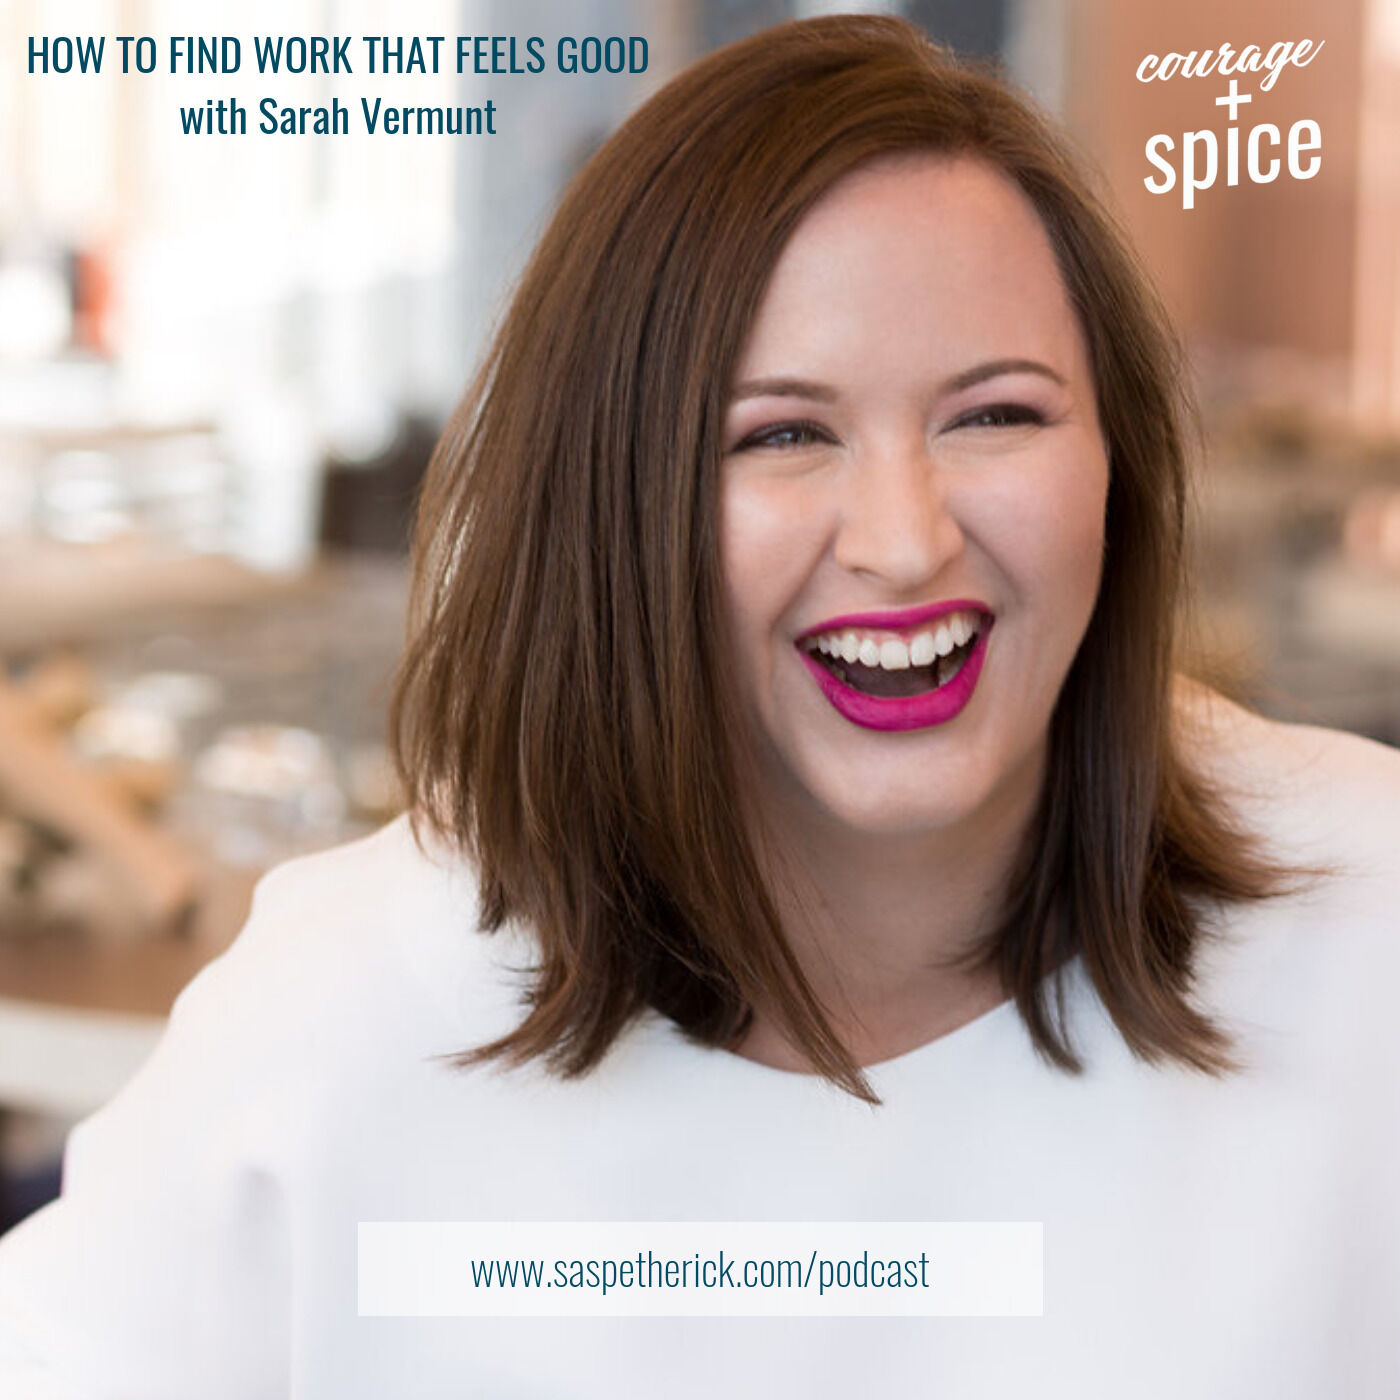 How to find work that feels GOOD with Sarah Vermunt of Careergasm